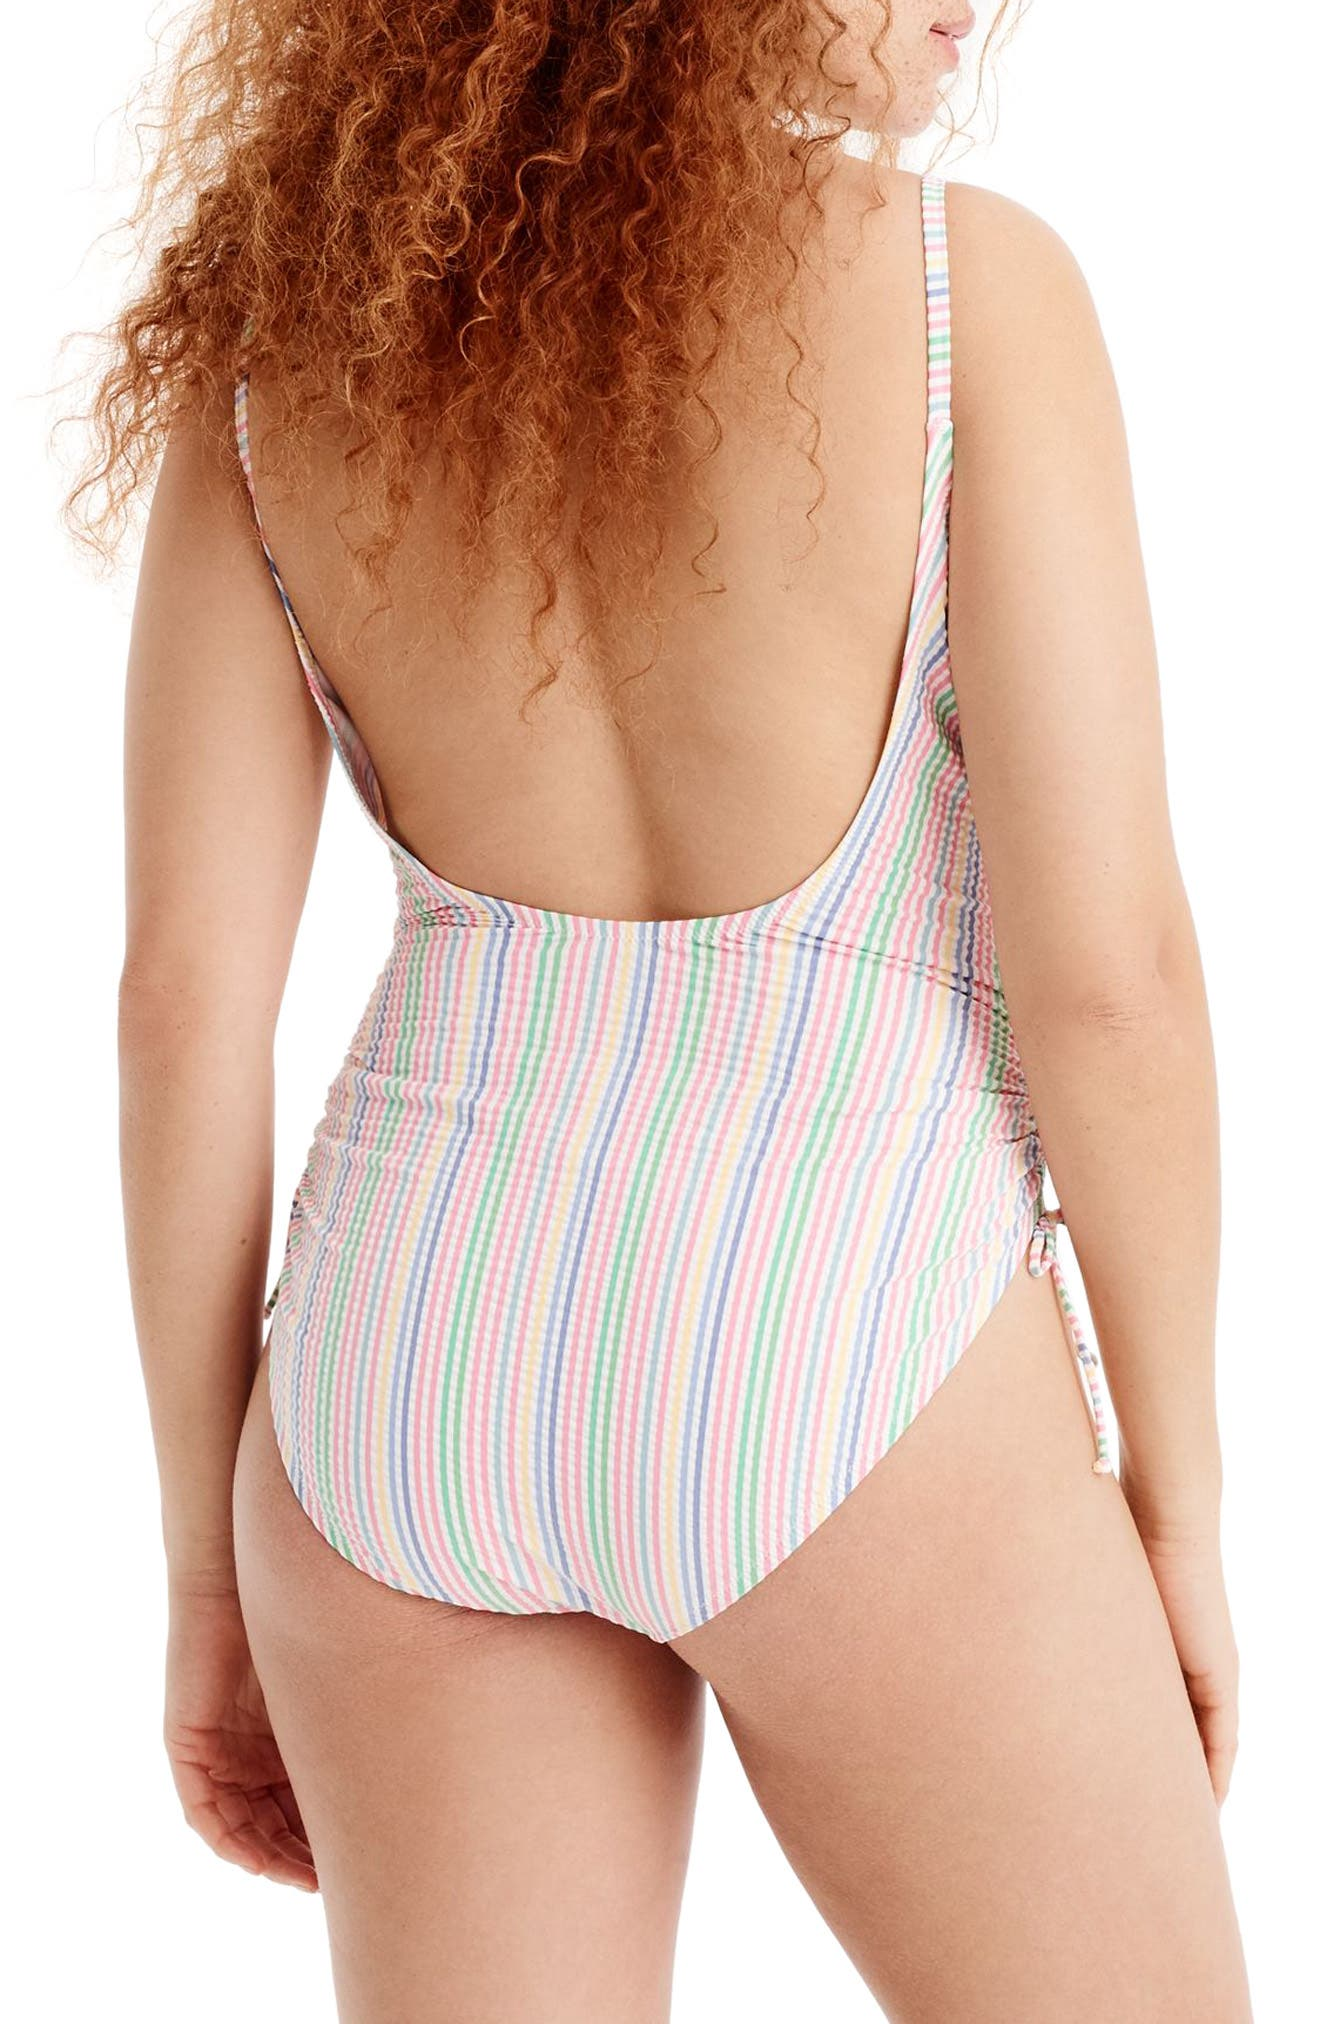 Ruched Seersucker One-Piece Swimsuit,                             Alternate thumbnail 2, color,                             400